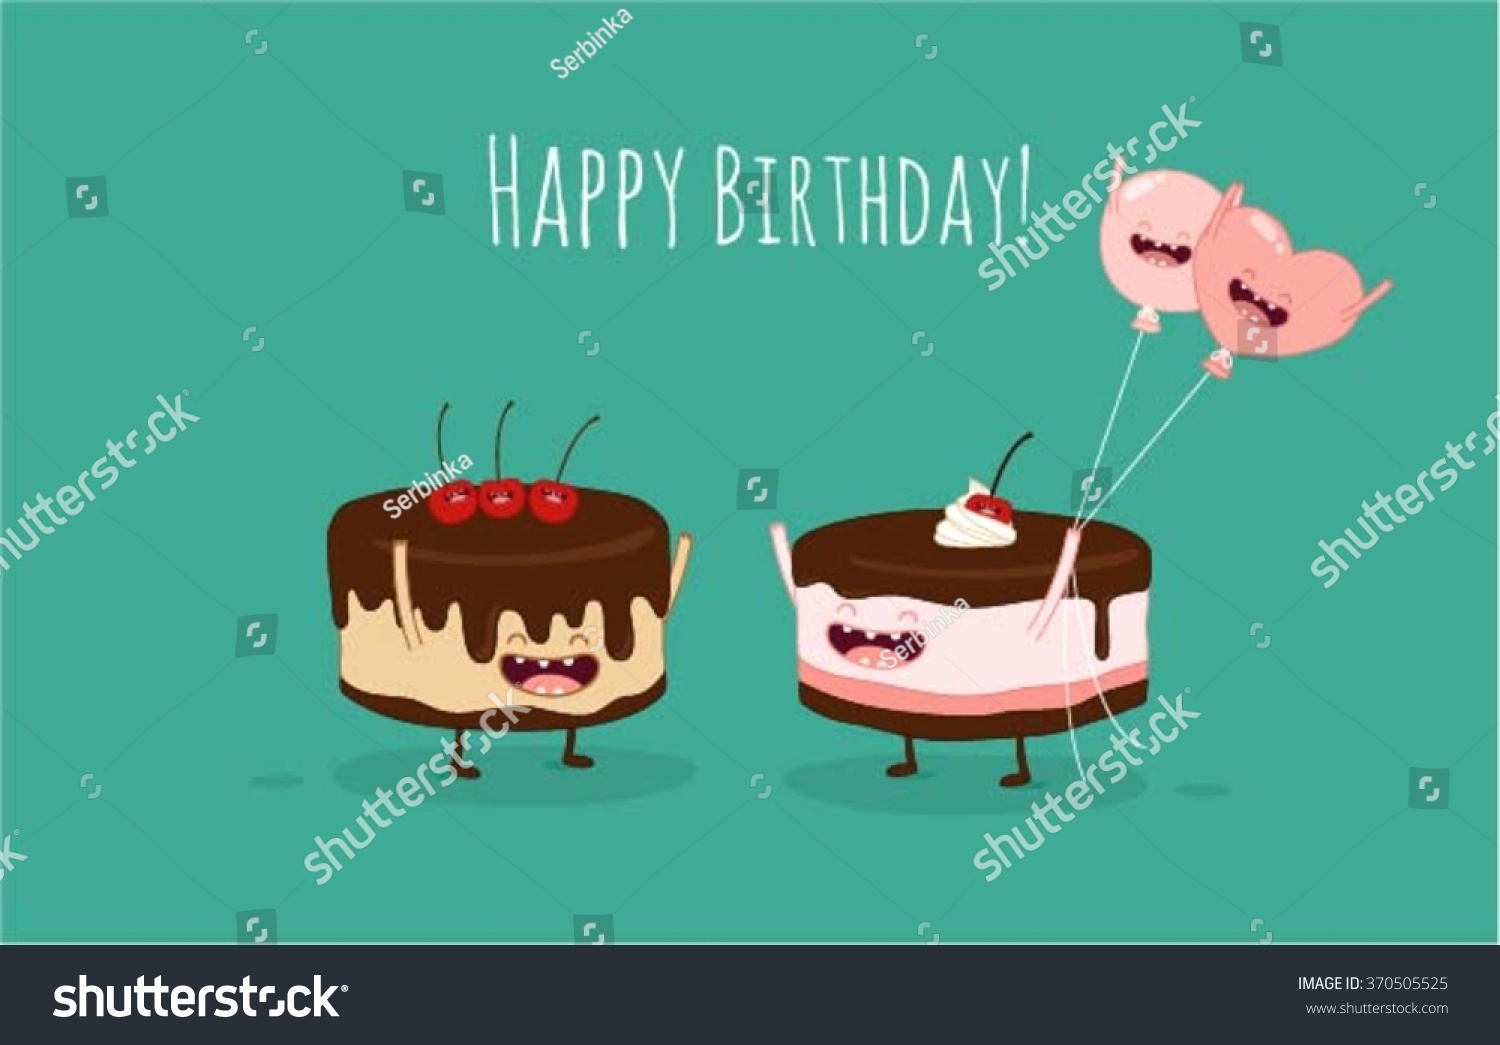 Funny Images For Birthday Cakes